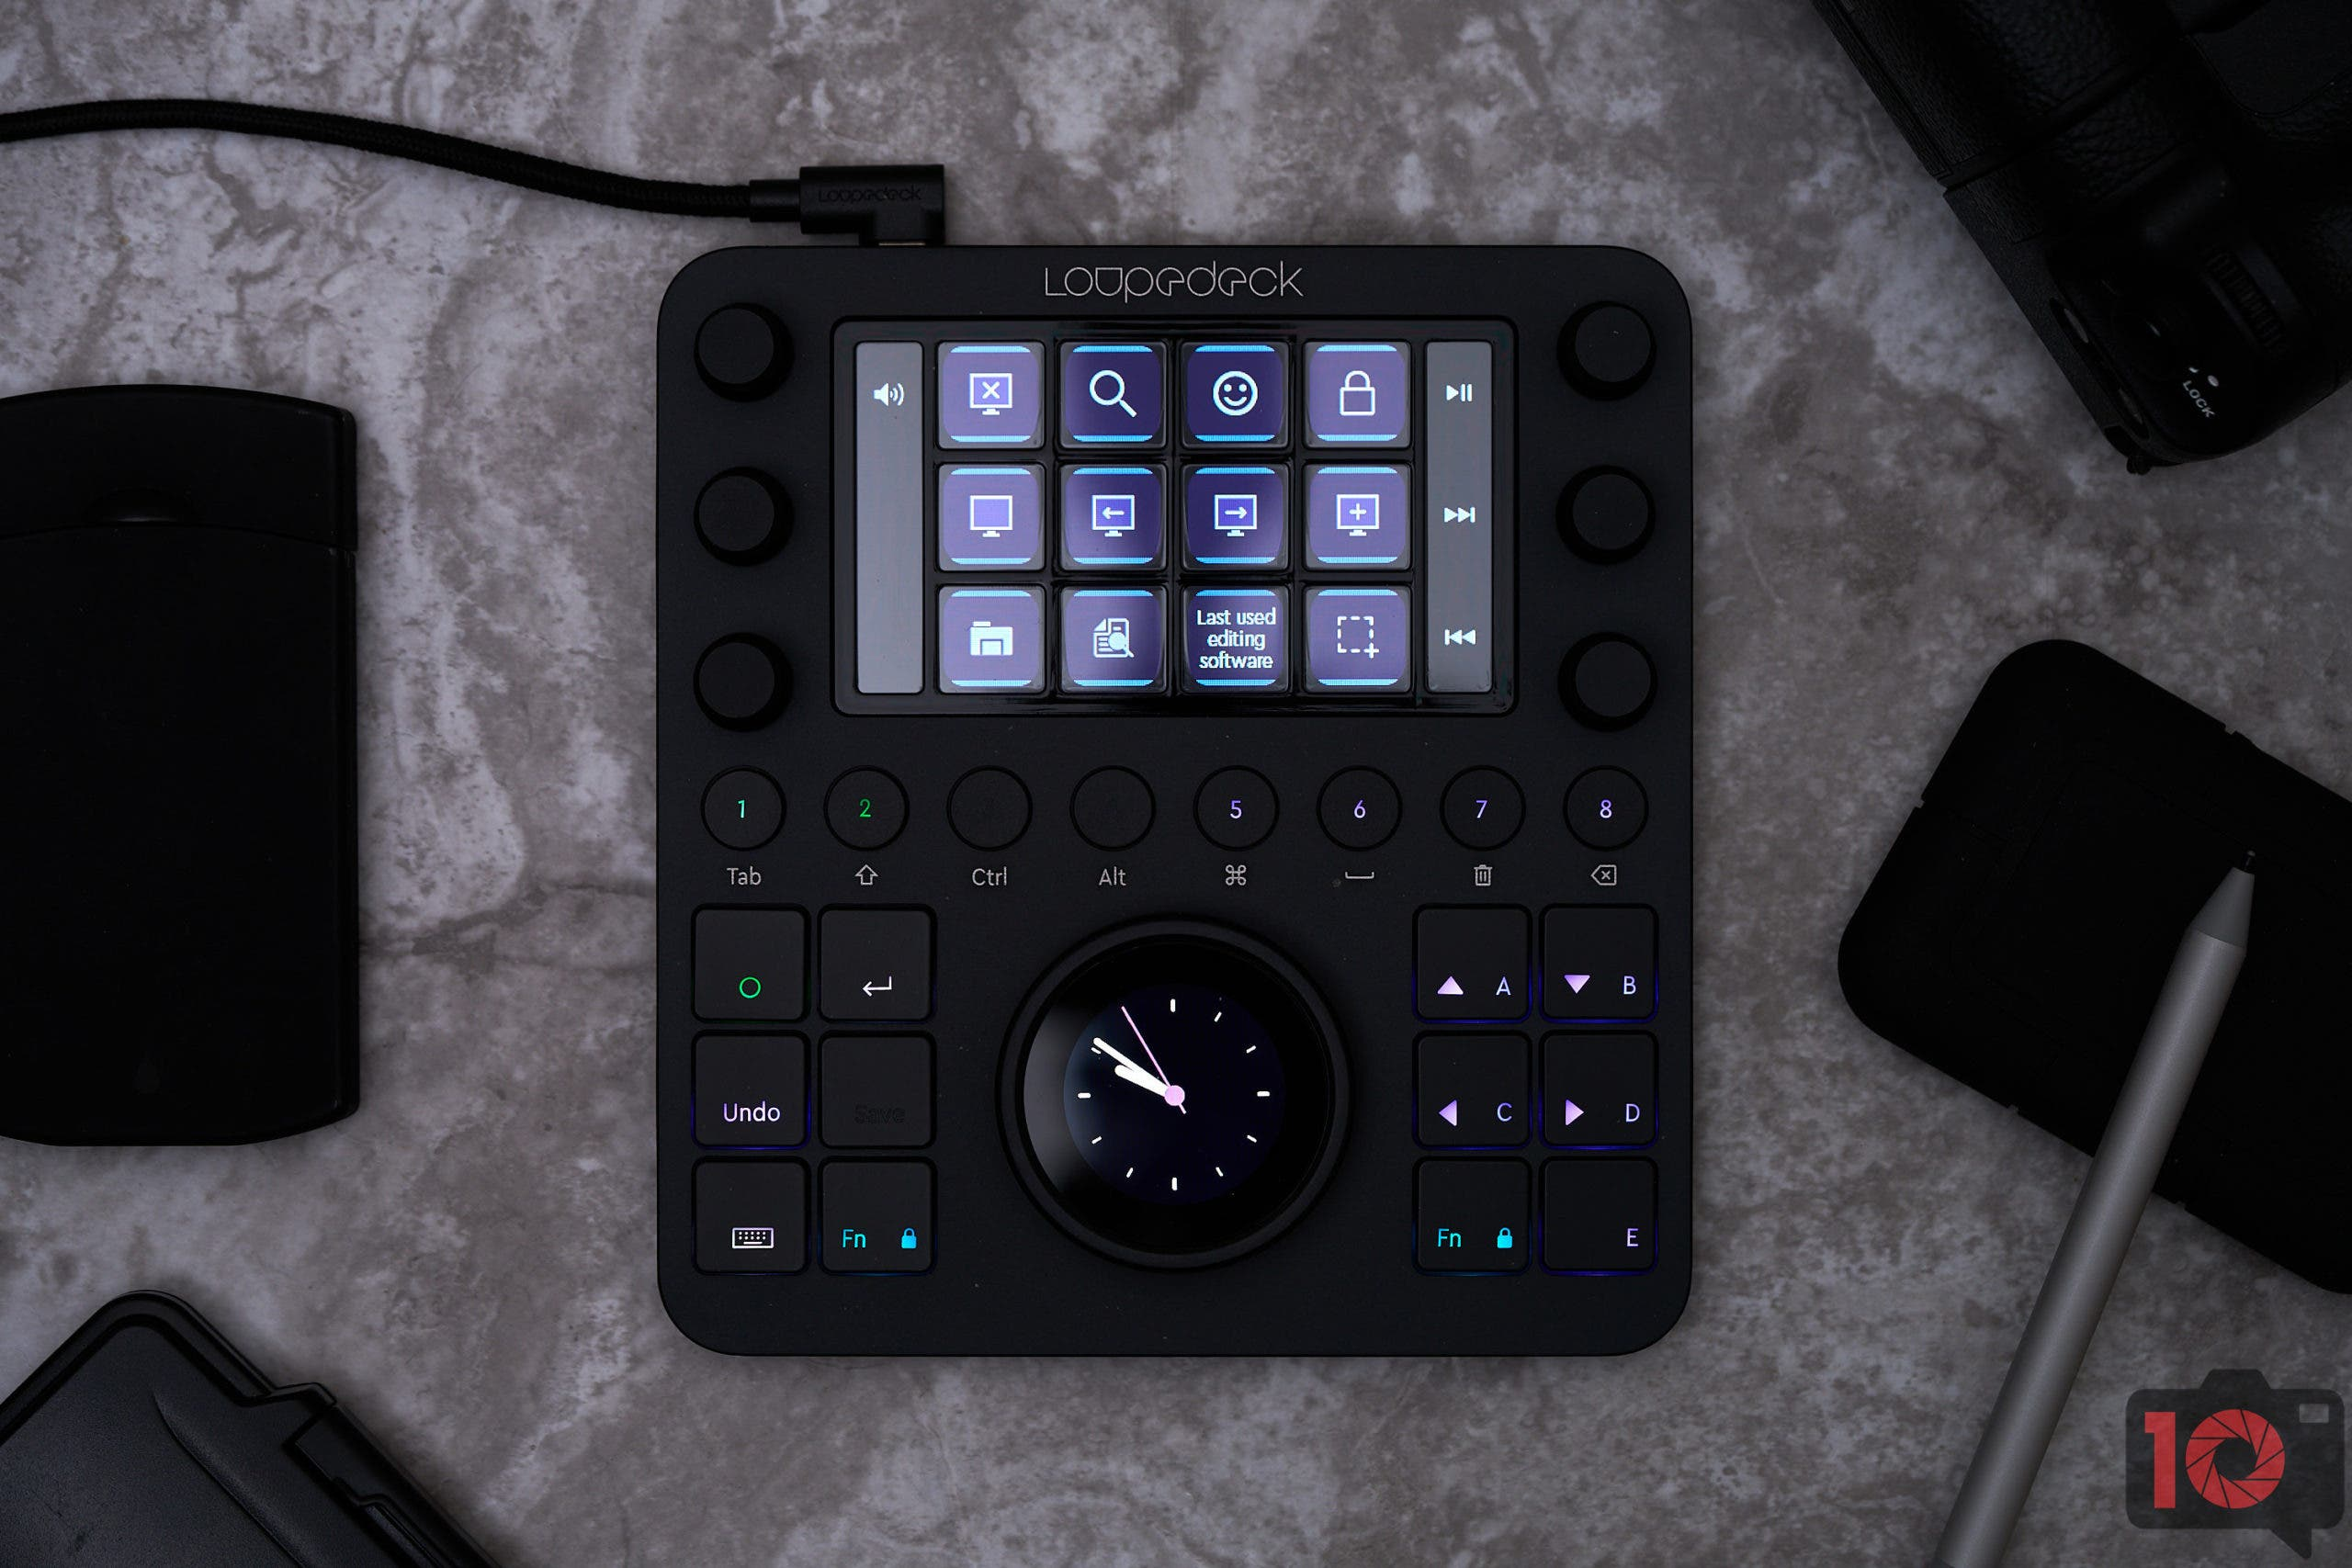 Loupedeck and Adobe Get Cozy With A New Plugin For Photoshop